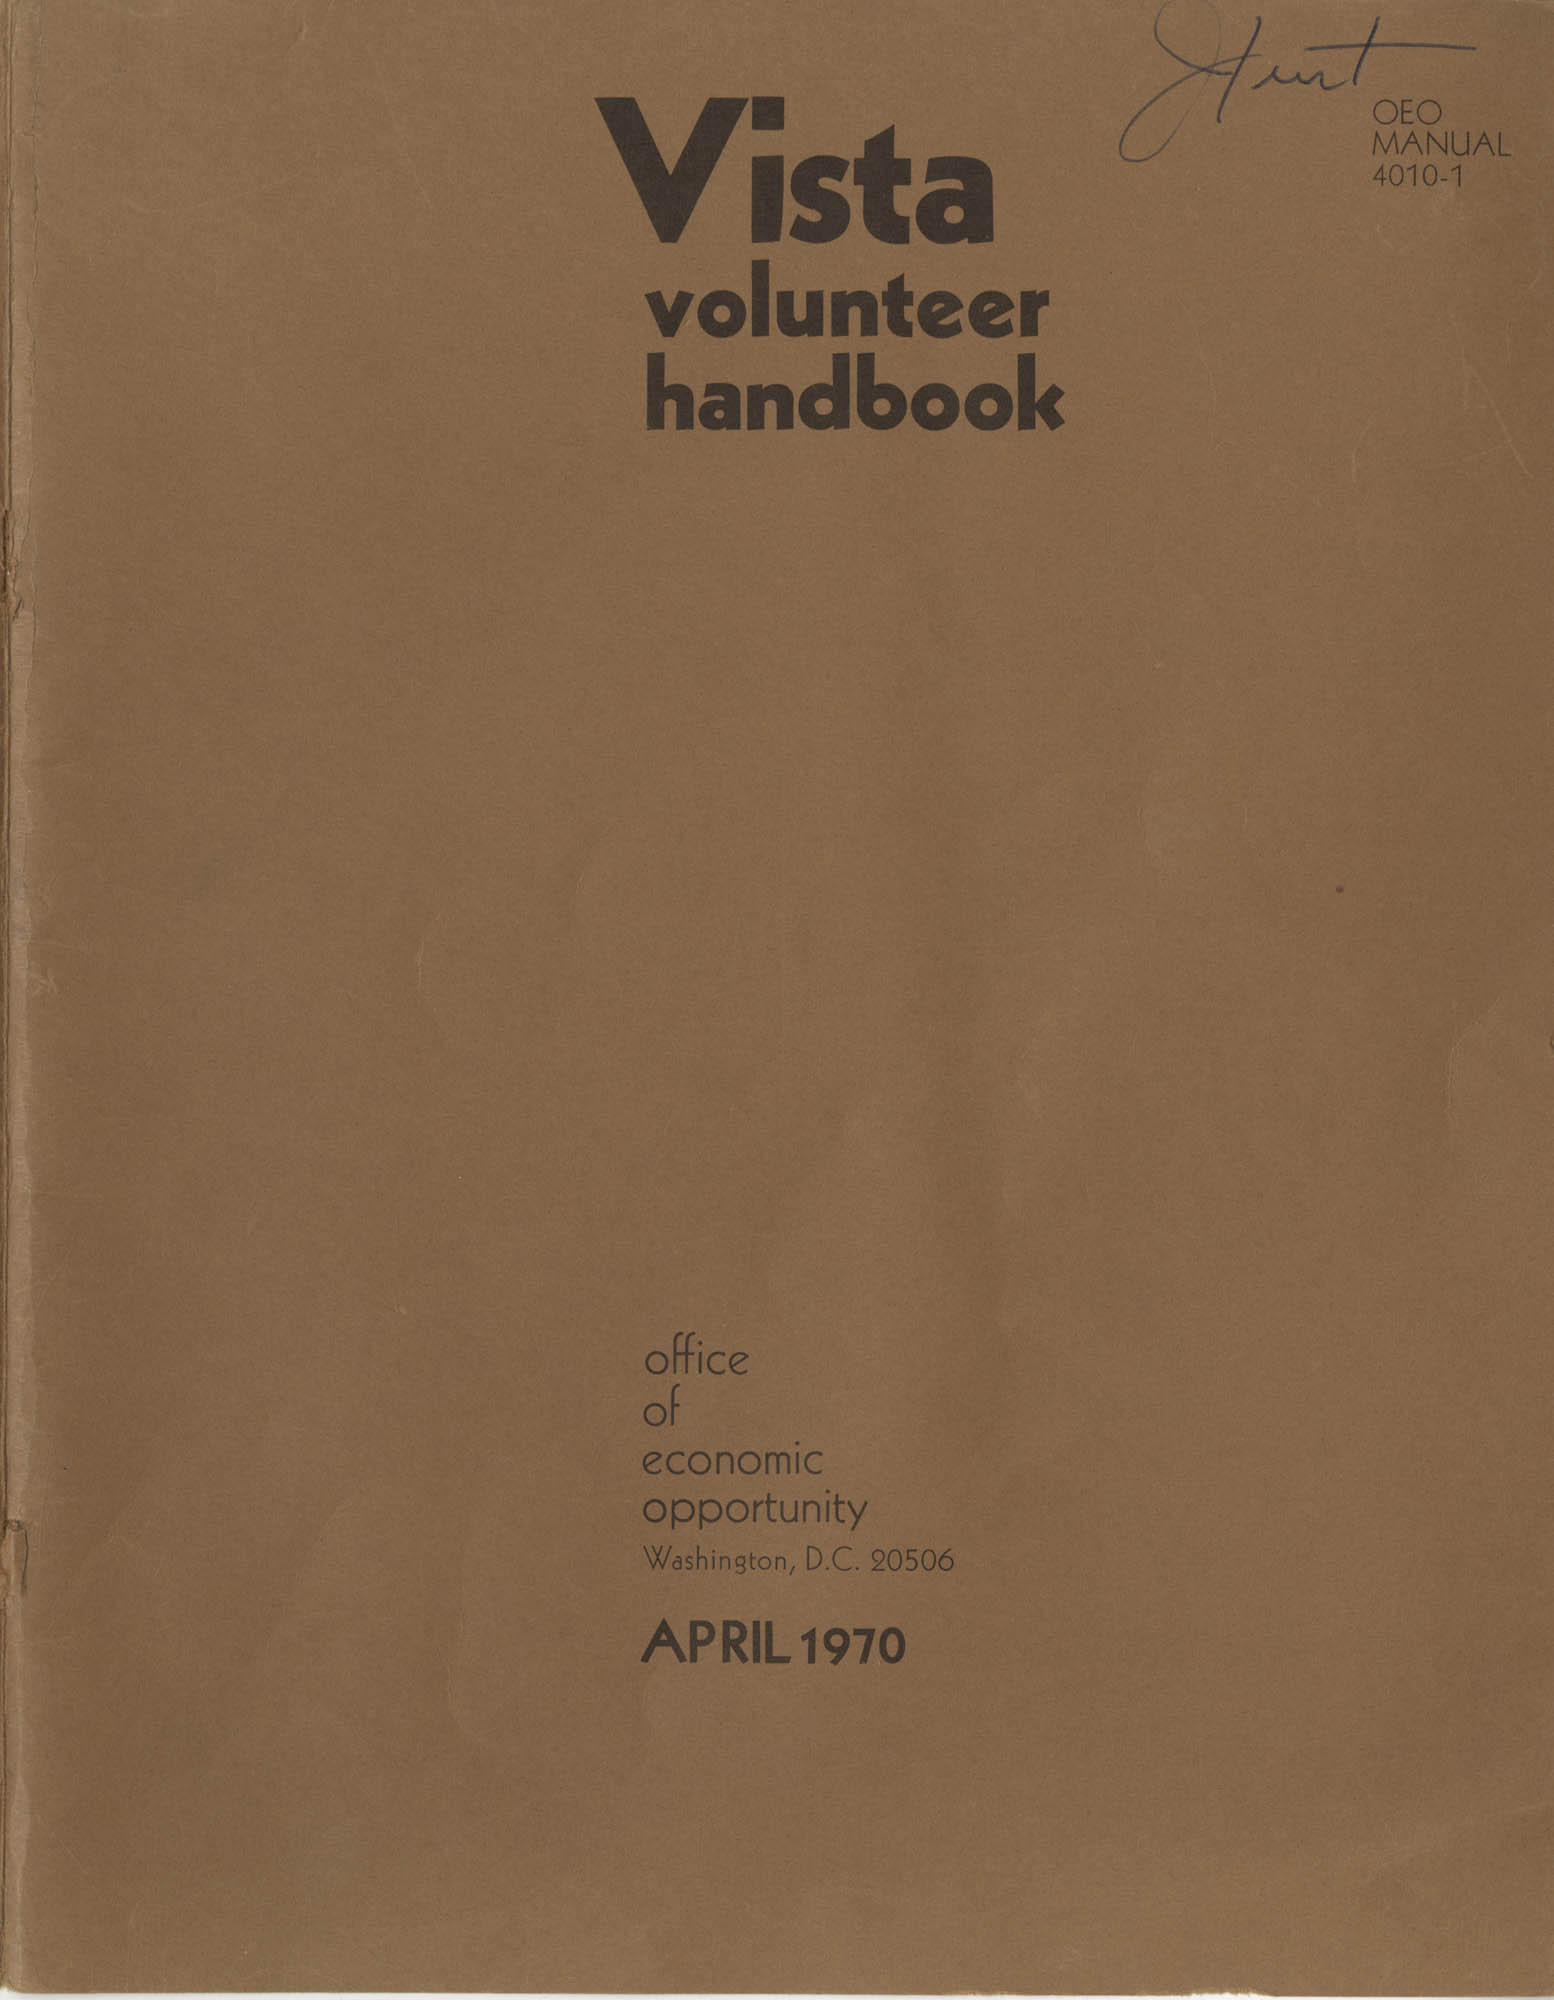 Vista Volunteer Handbook, April 1970